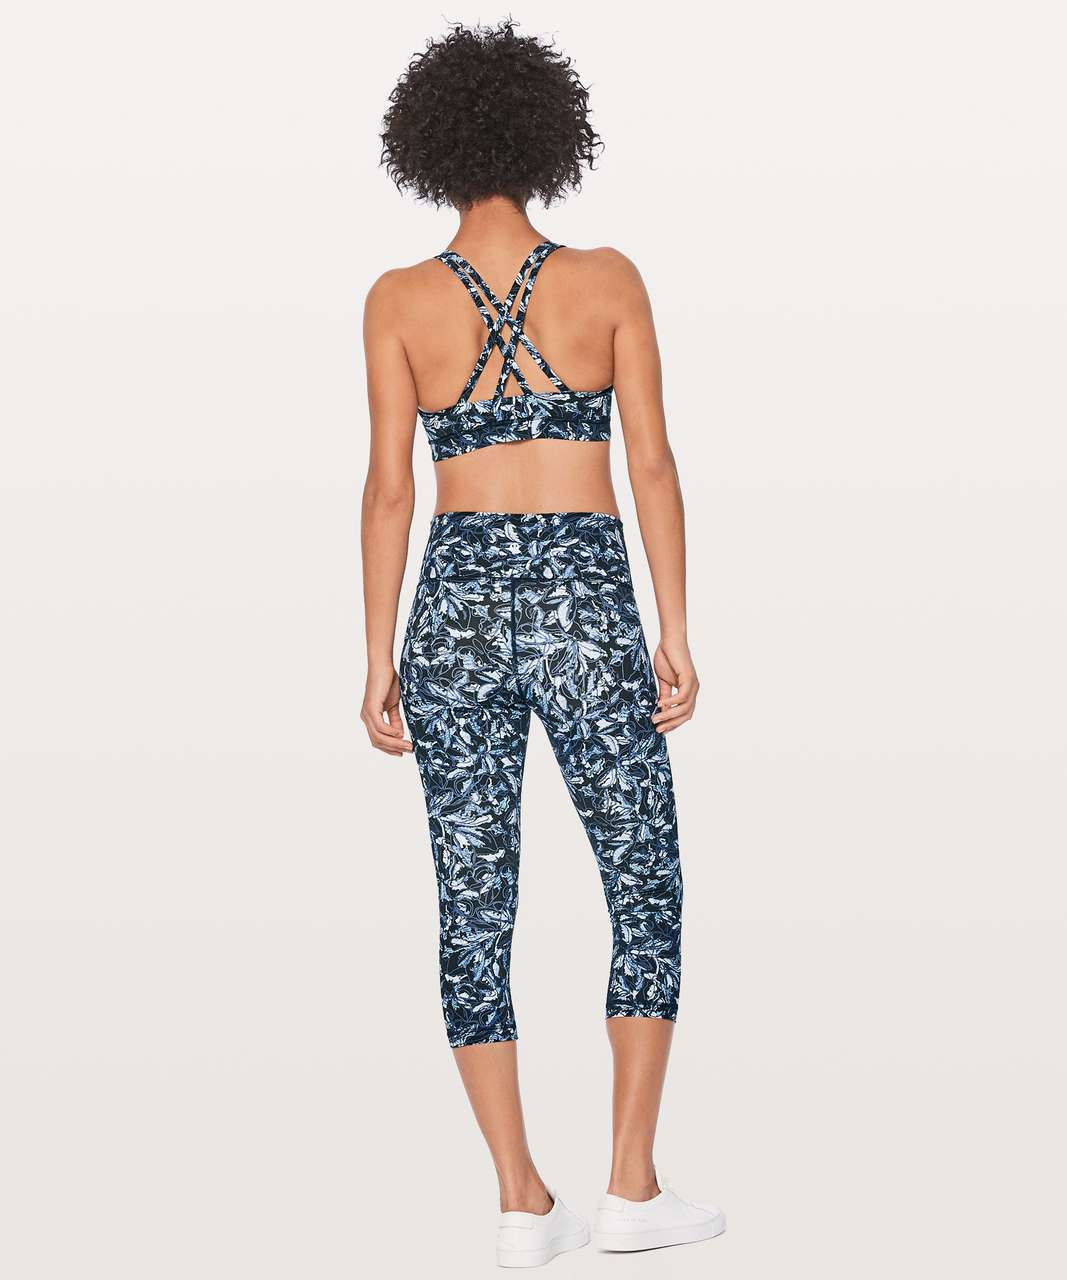 "Lululemon Wunder Under Crop (Hi-Rise) 21"" - Embellished Multi"